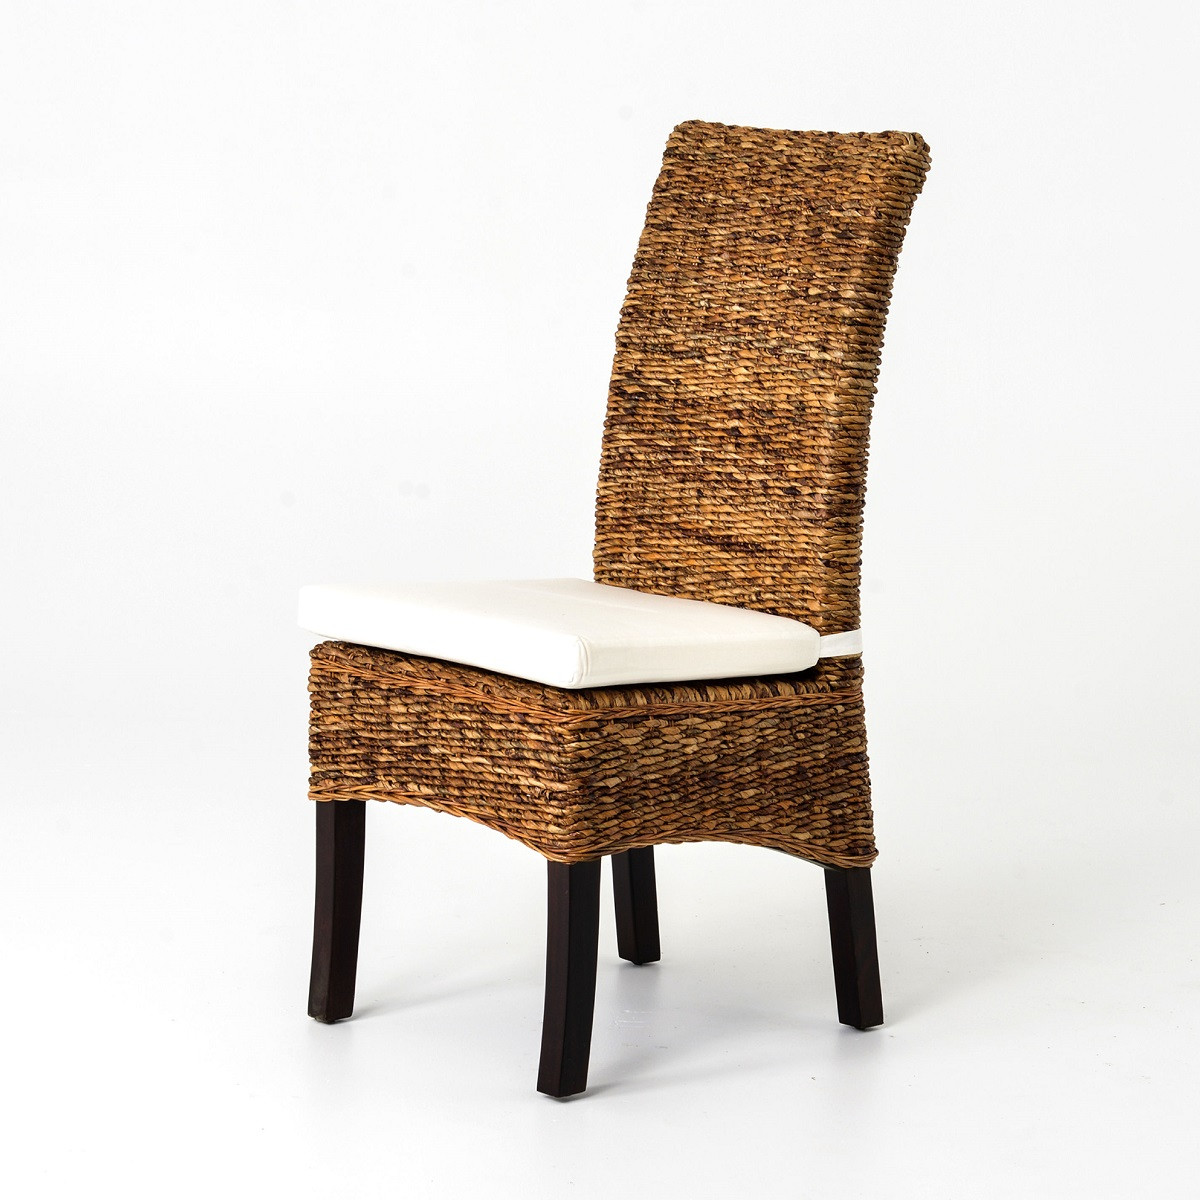 Woven Chair Banana Leaf Woven Side Chair With Cushion Seagrass